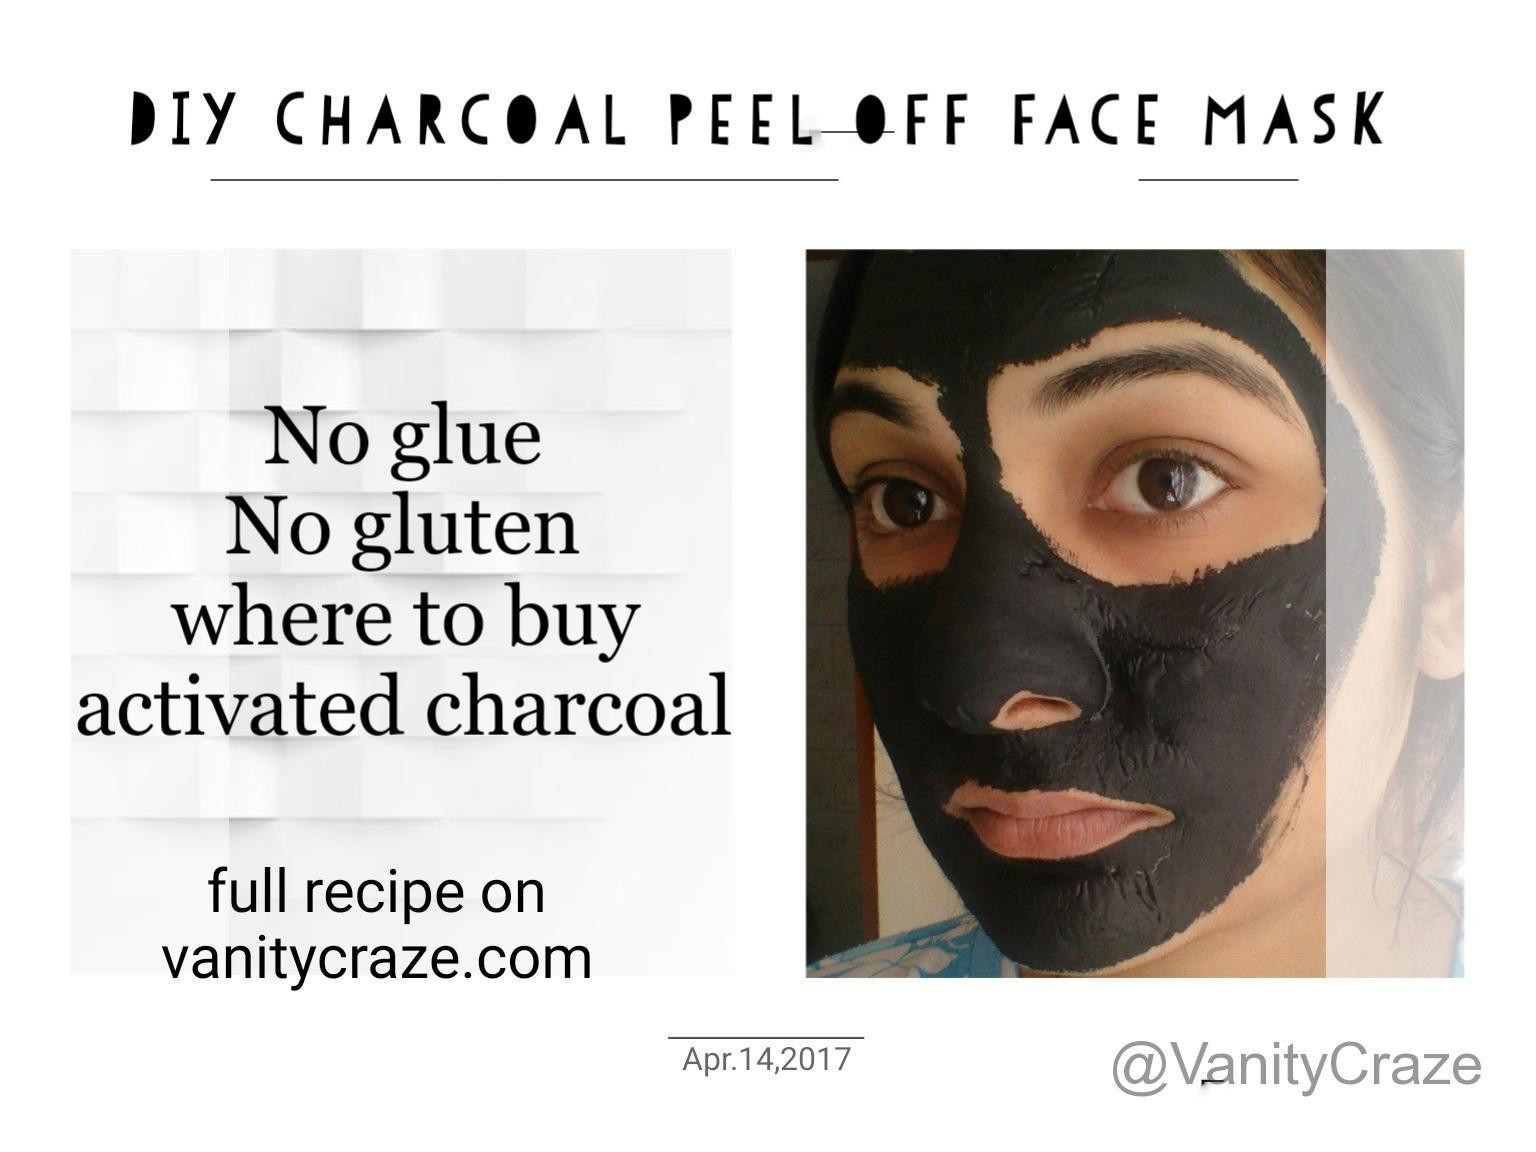 Best ideas about DIY Charcoal Mask With Glue . Save or Pin Charcoal Peel off Face Mask For Blackheads and Whiteheads Now.